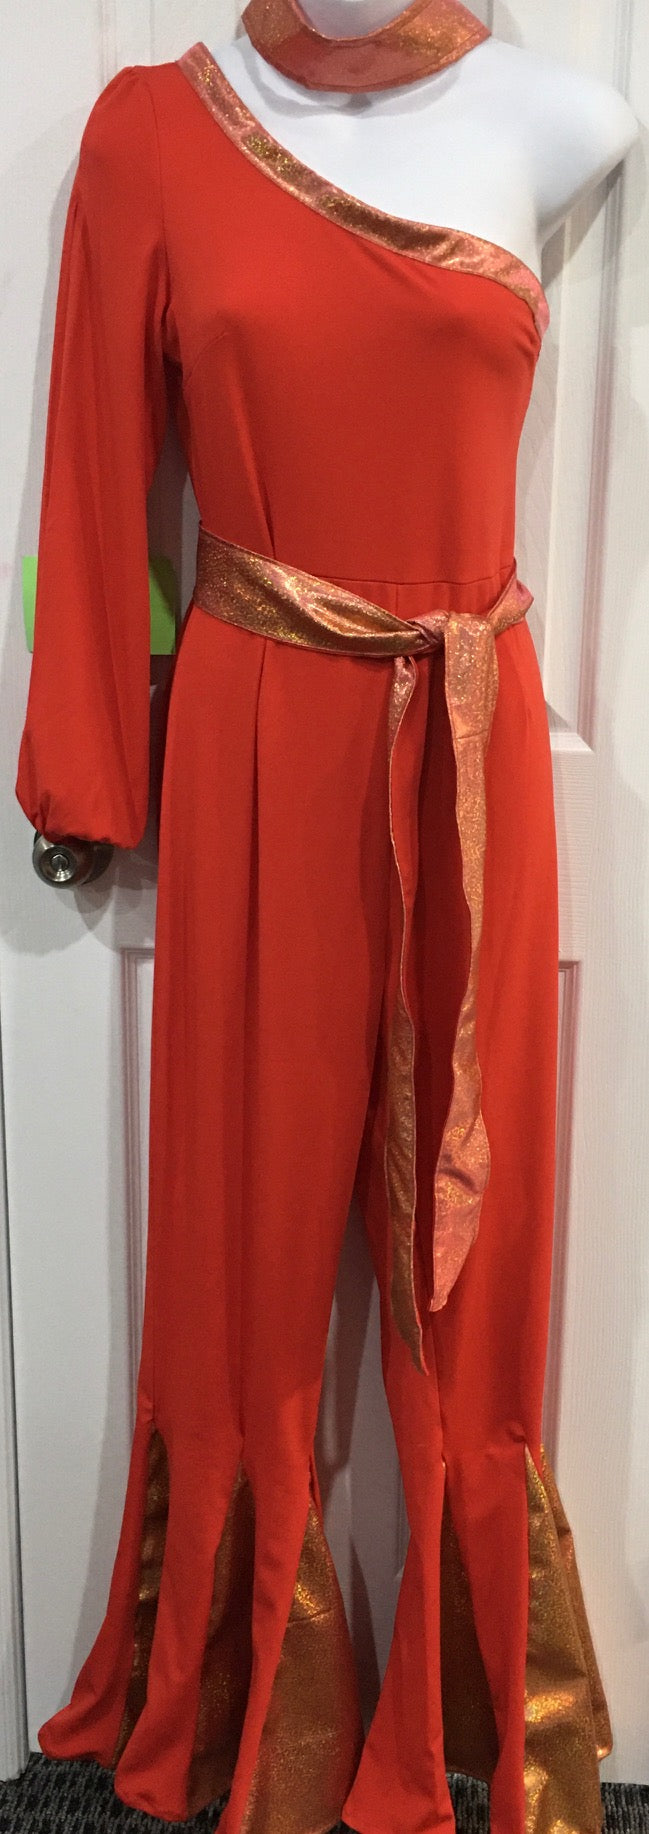 COSTUME RENTAL - X303 Jumpsuit, Red Disco